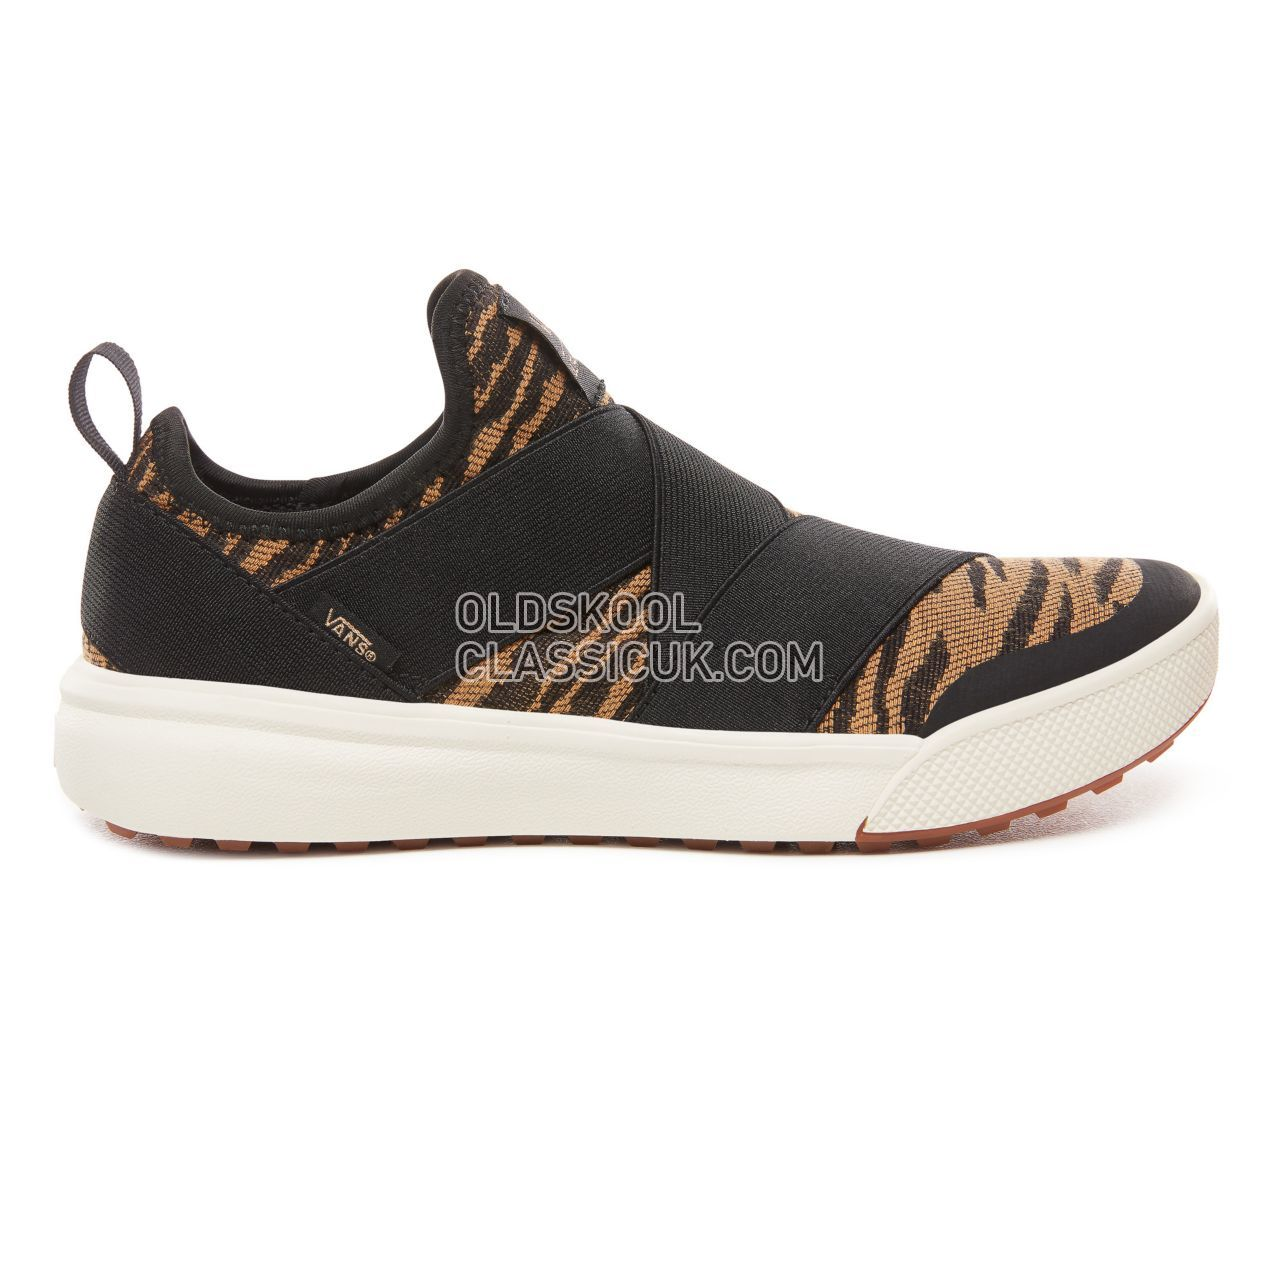 sneakers for cheap 37c42 7cb14 Vans Woven Tiger Ultrarange Gore Sneakers Womens (Woven Tiger) Black  VN0A3MVRUR3 Shoes - £58